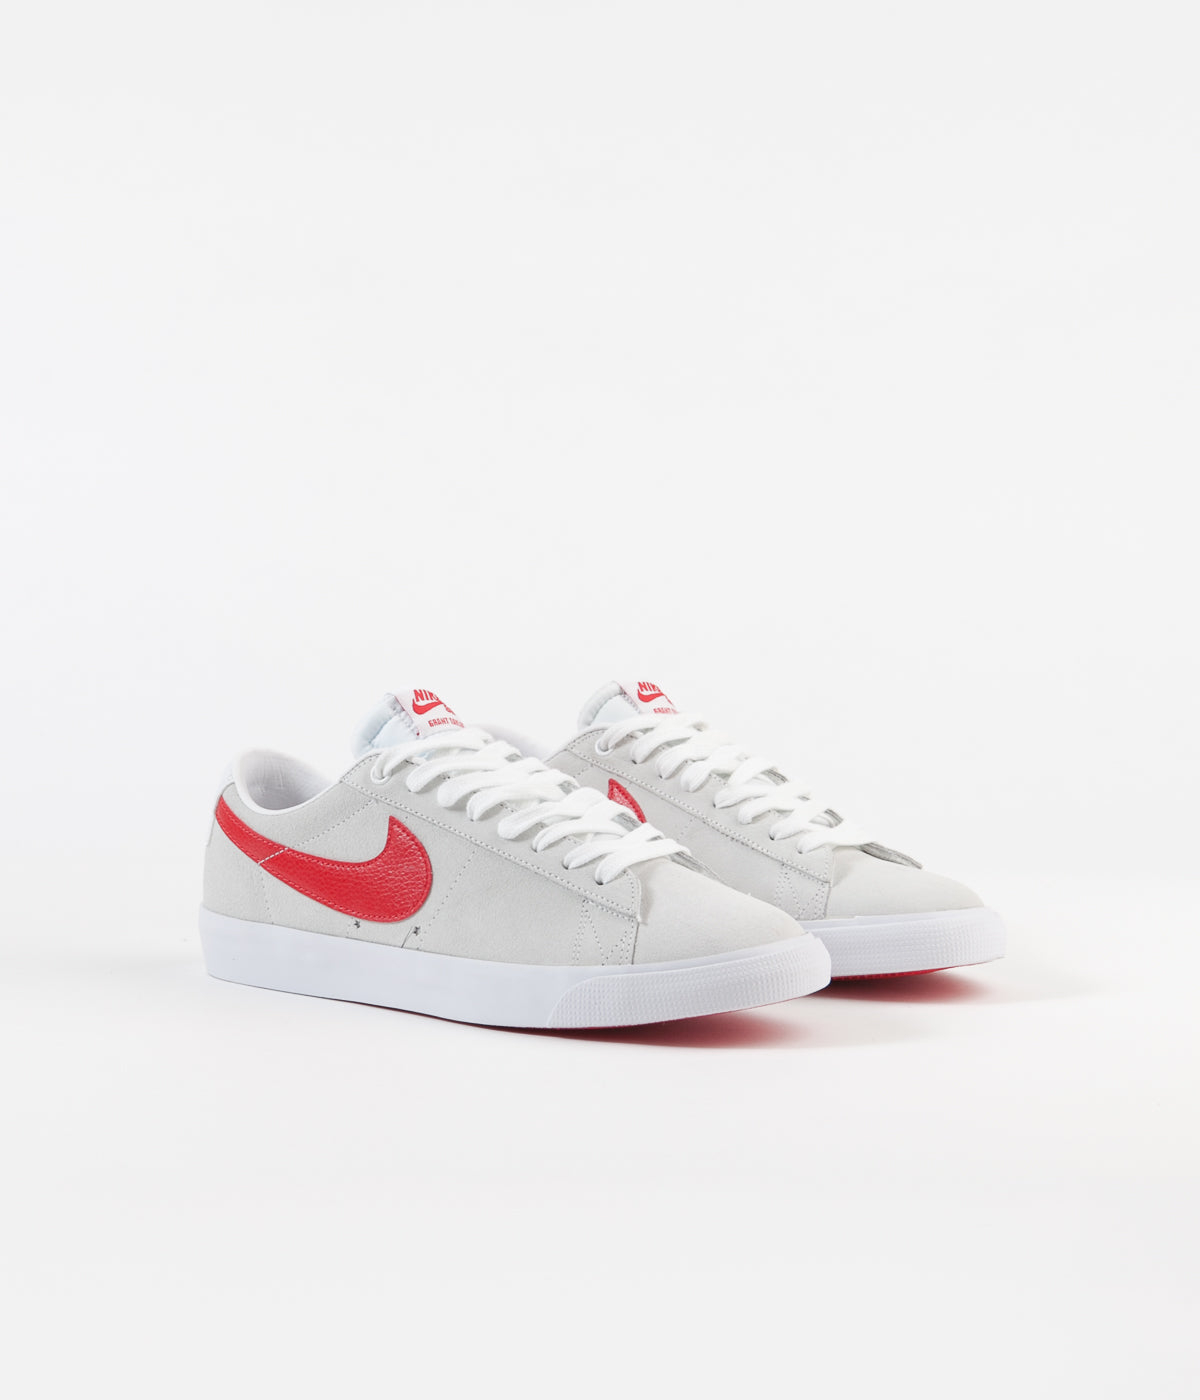 competitive price 77e75 d62bc Nike SB Blazer Low GT Shoes - White   University Red